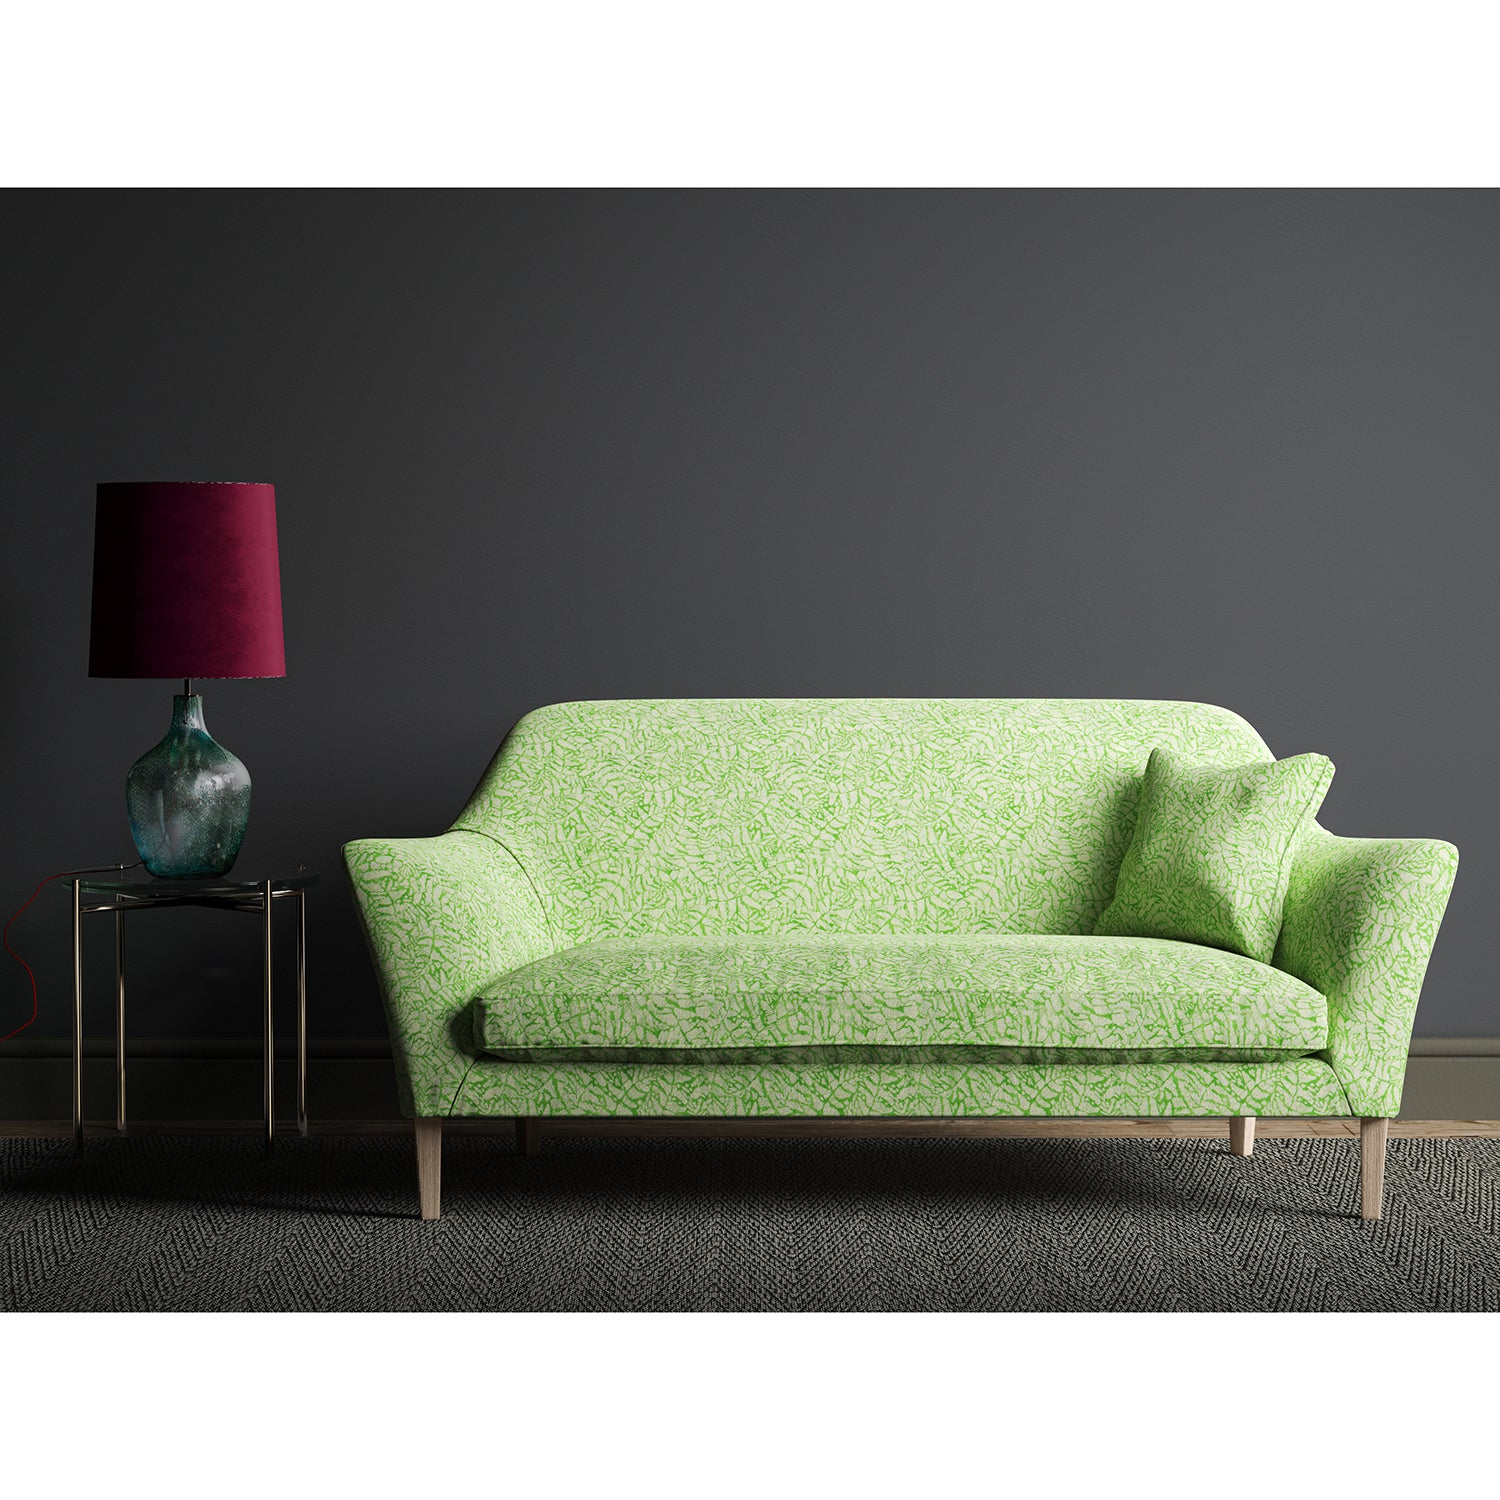 Sofa upholstered in a green fabric with a small white print